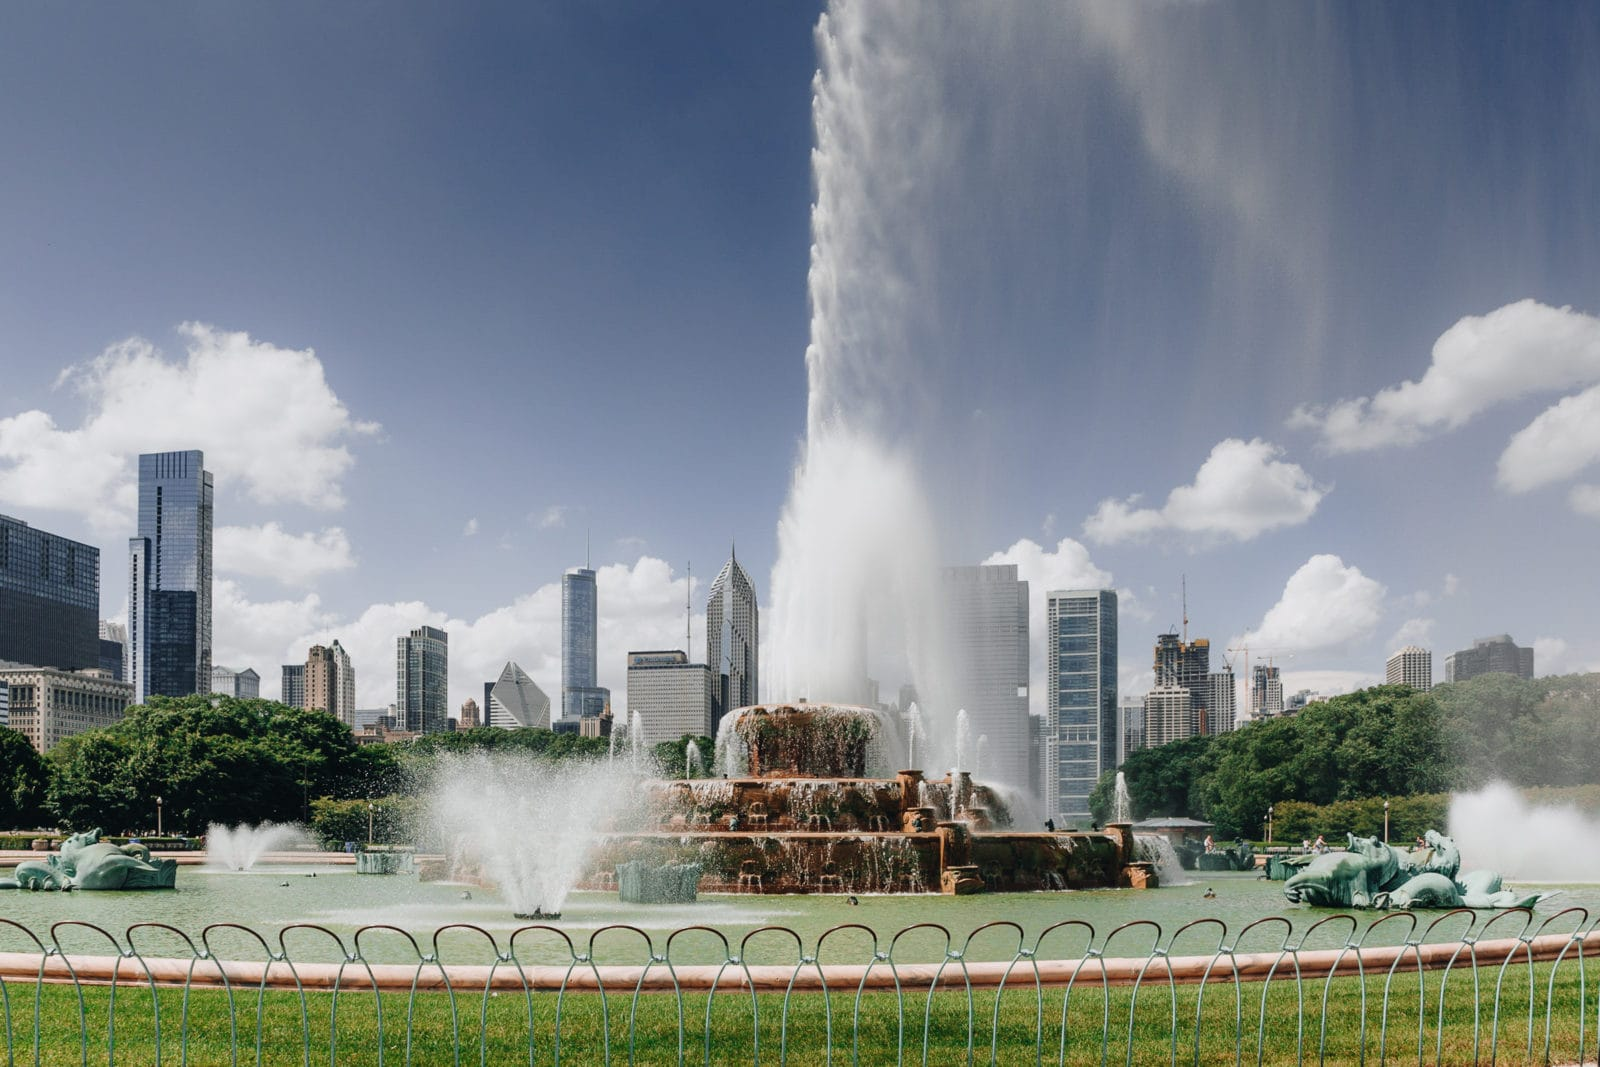 Best Things to do in Chicago Buckingham Fountain Al Bundy